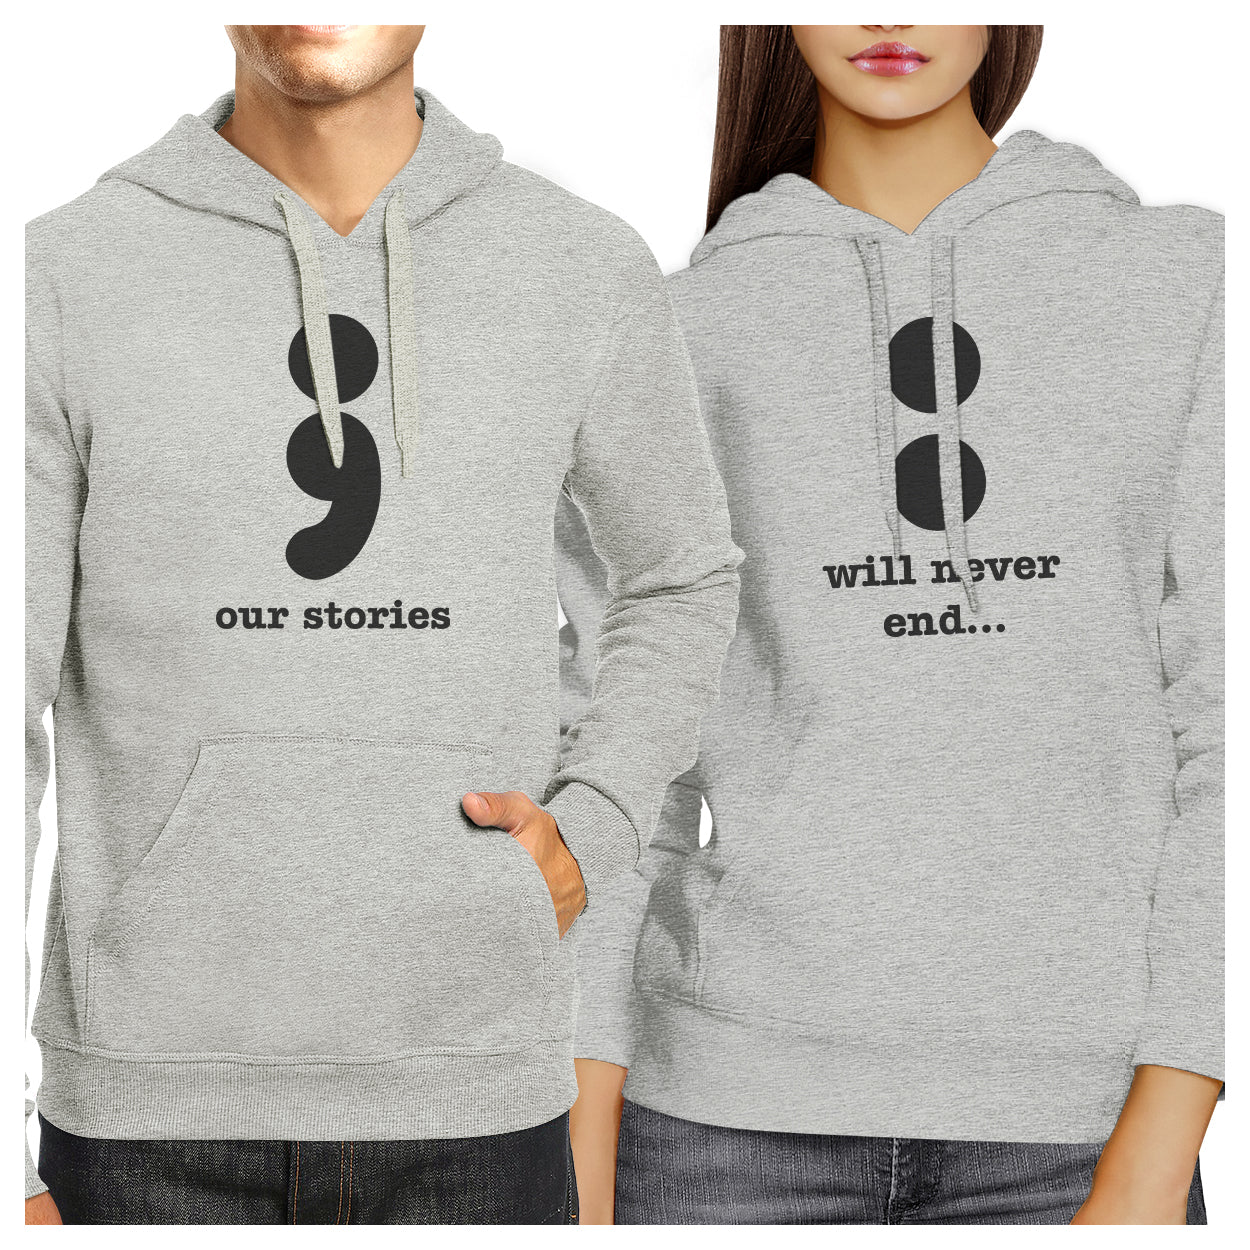 25adf4b90c6c51 Our Stories Will Never End Matching Couple Grey Hoodie - 365 IN LOVE ...